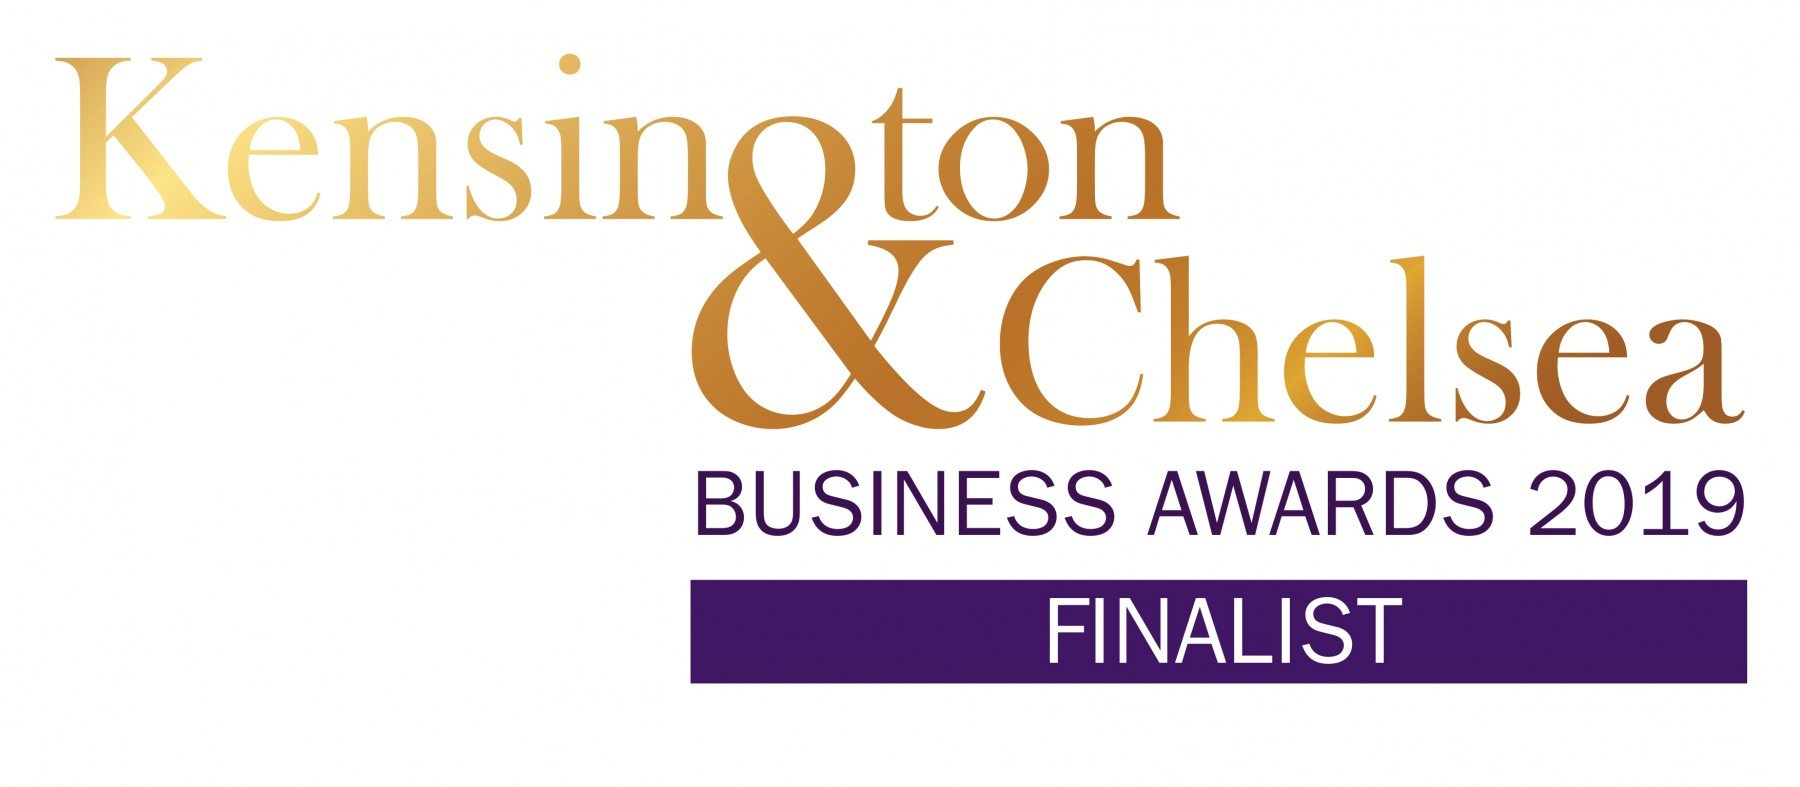 kensington-chelsea-business-awards-FINALIST-2019-threads-and-co